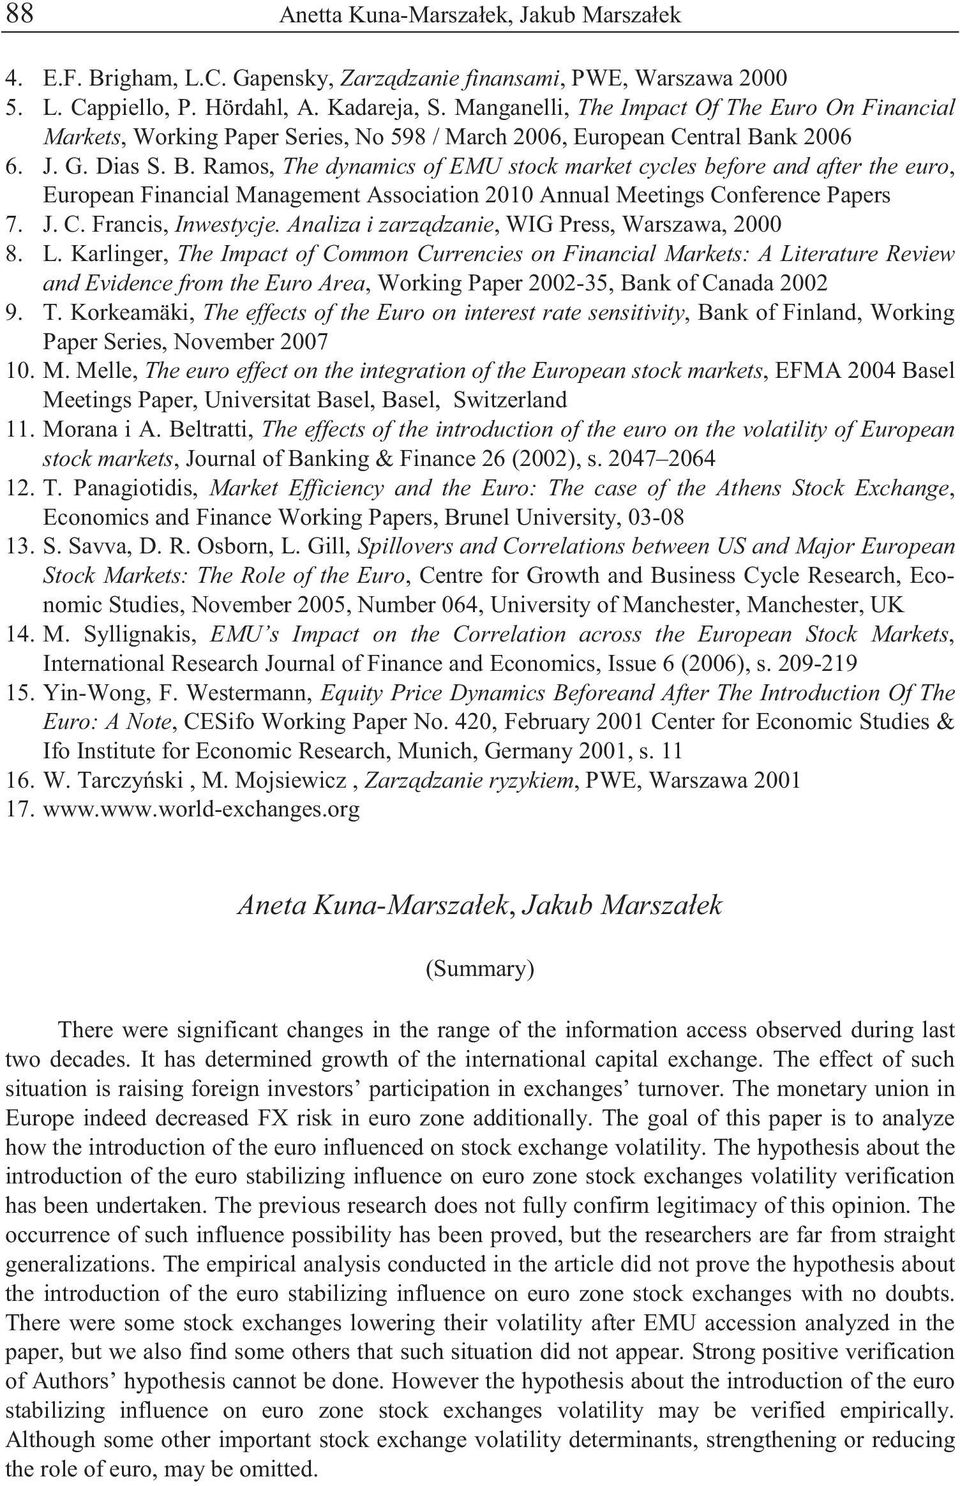 nk 2006 6. J. G. Dias S. B. Ramos, The dynamics of EMU stock market cycles before and after the euro, European Financial Management Association 2010 Annual Meetings Conference Papers 7. J. C. Francis, Inwestycje.